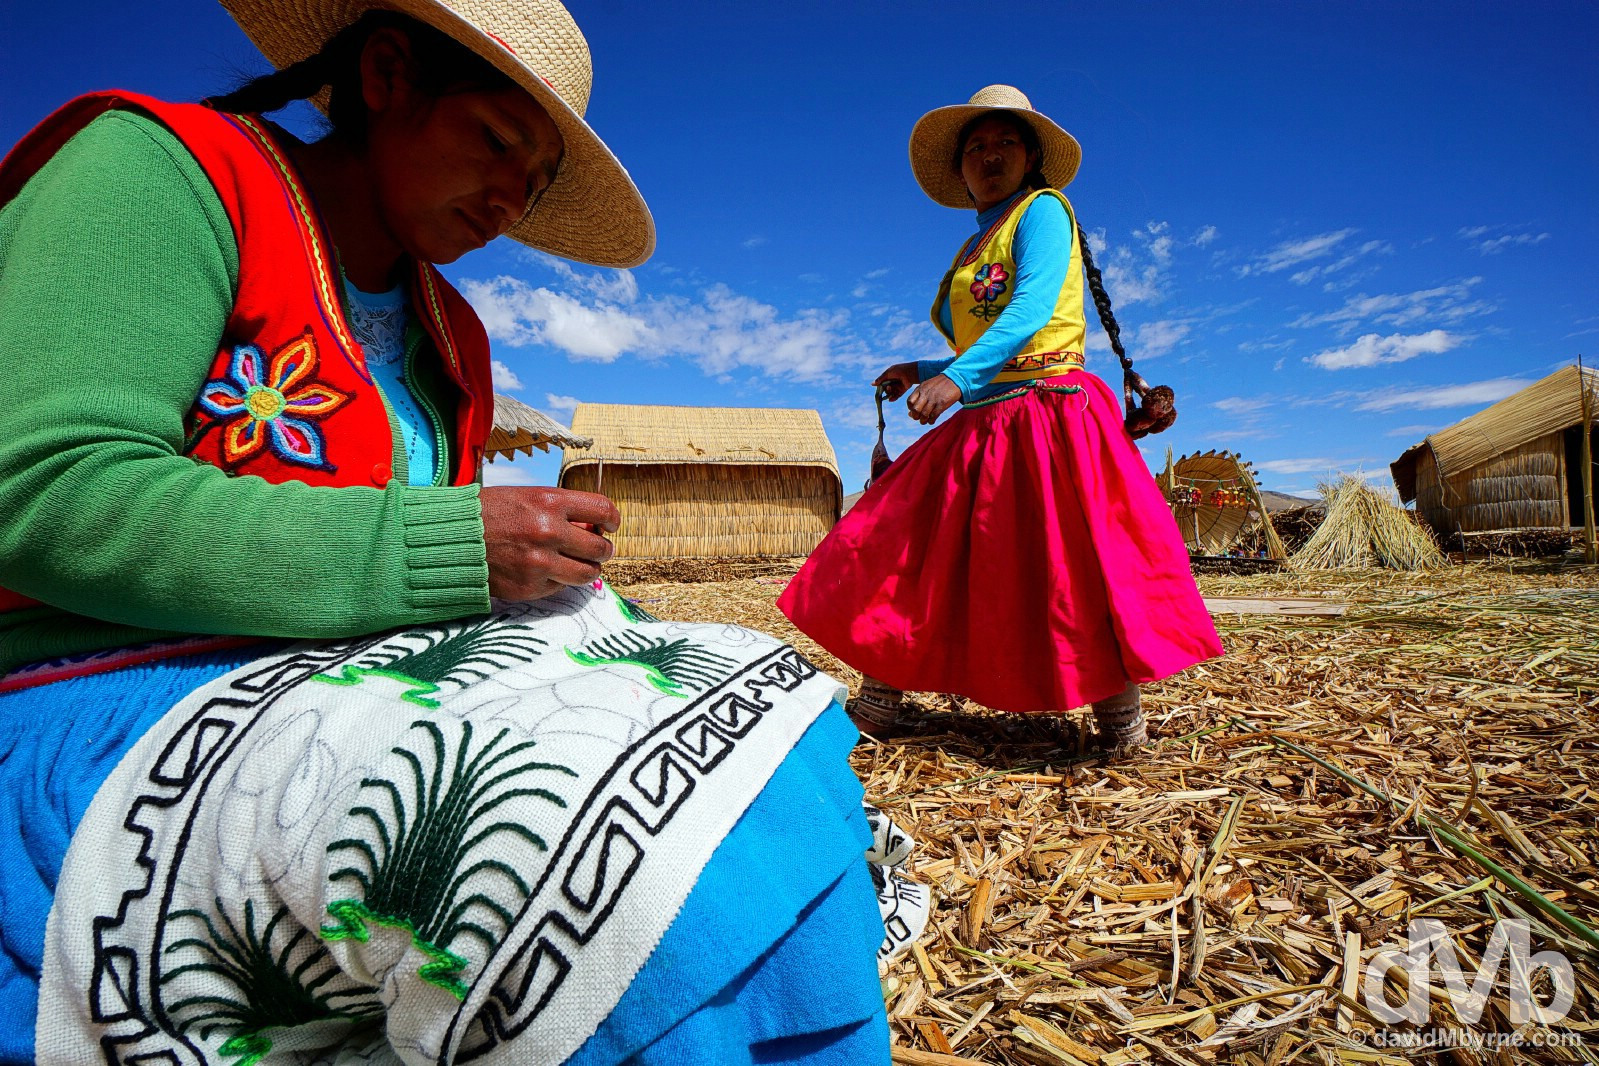 Locals on the floating Uros Islands, Lake Titicaca, Peru. August 19, 2015.